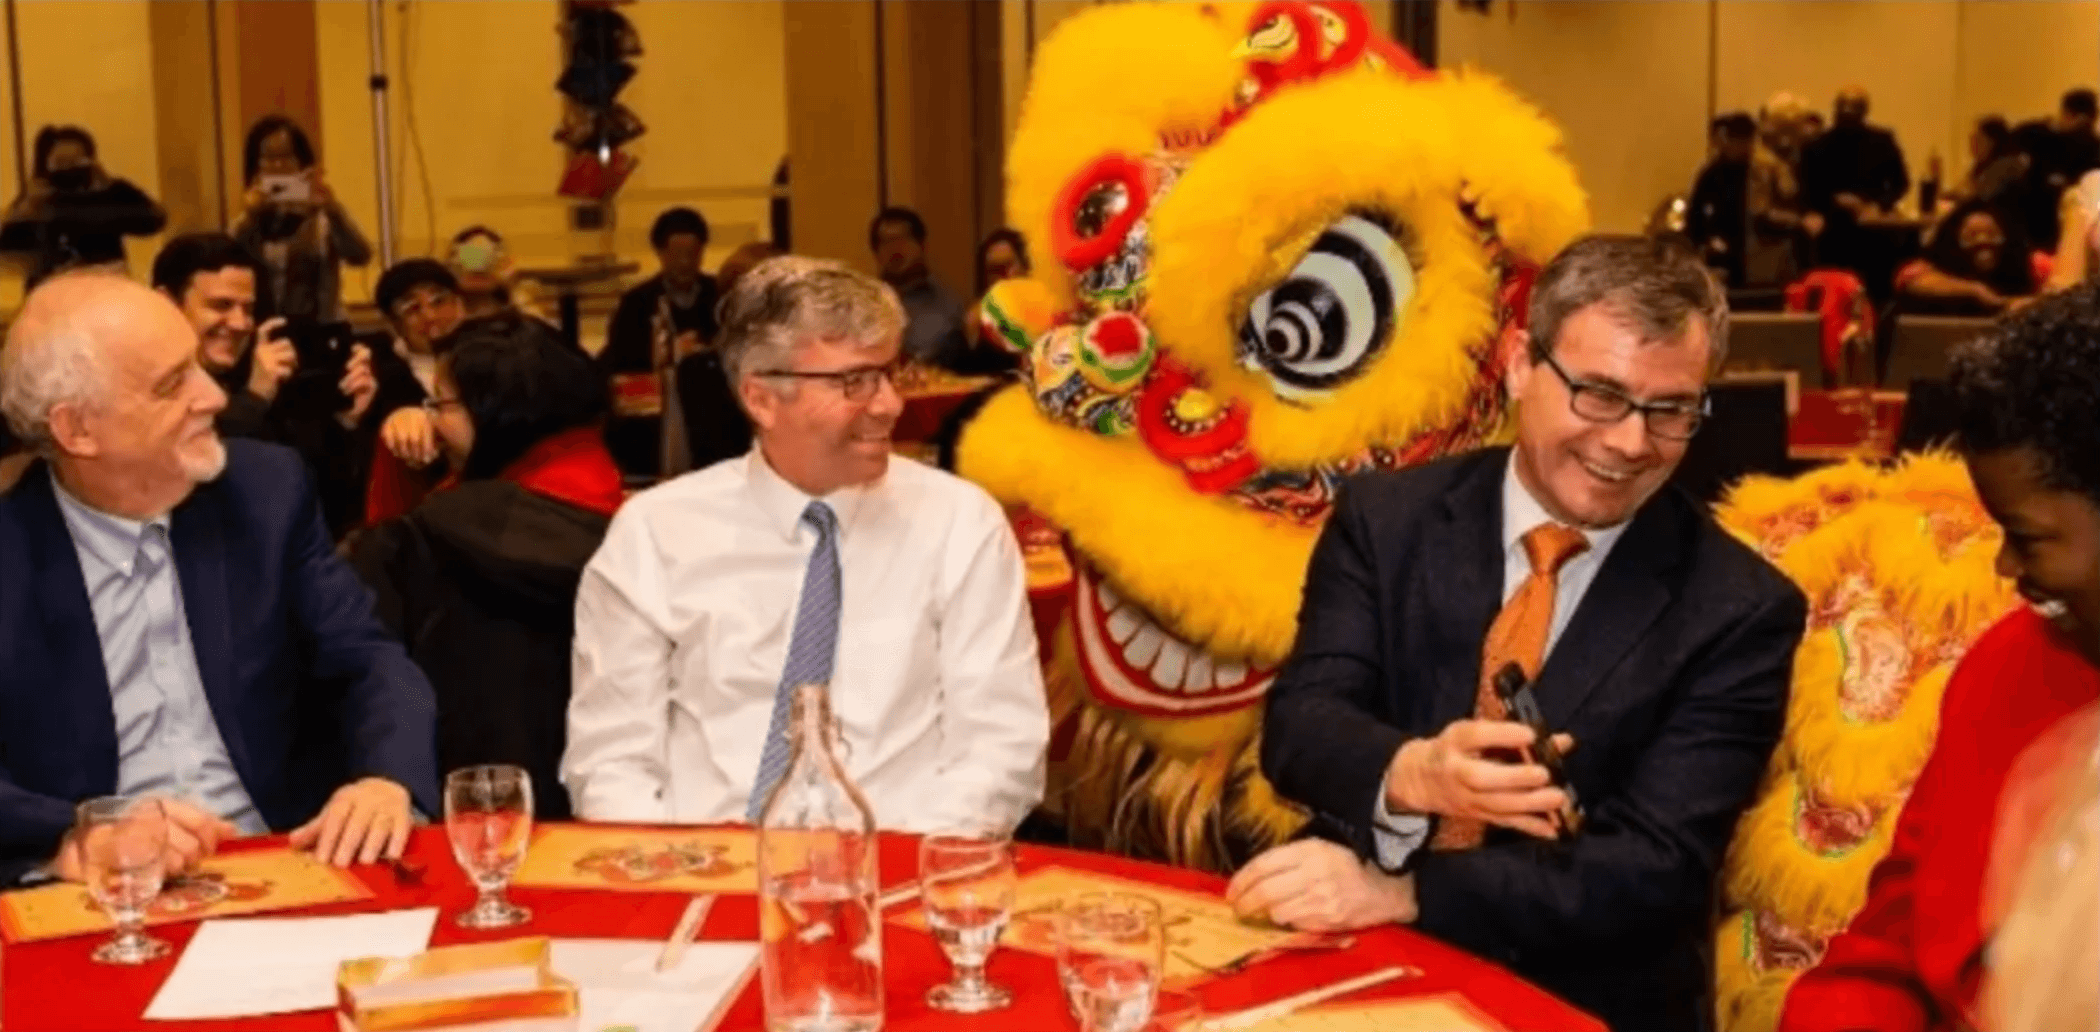 Event attendees entertained by Chinese lion